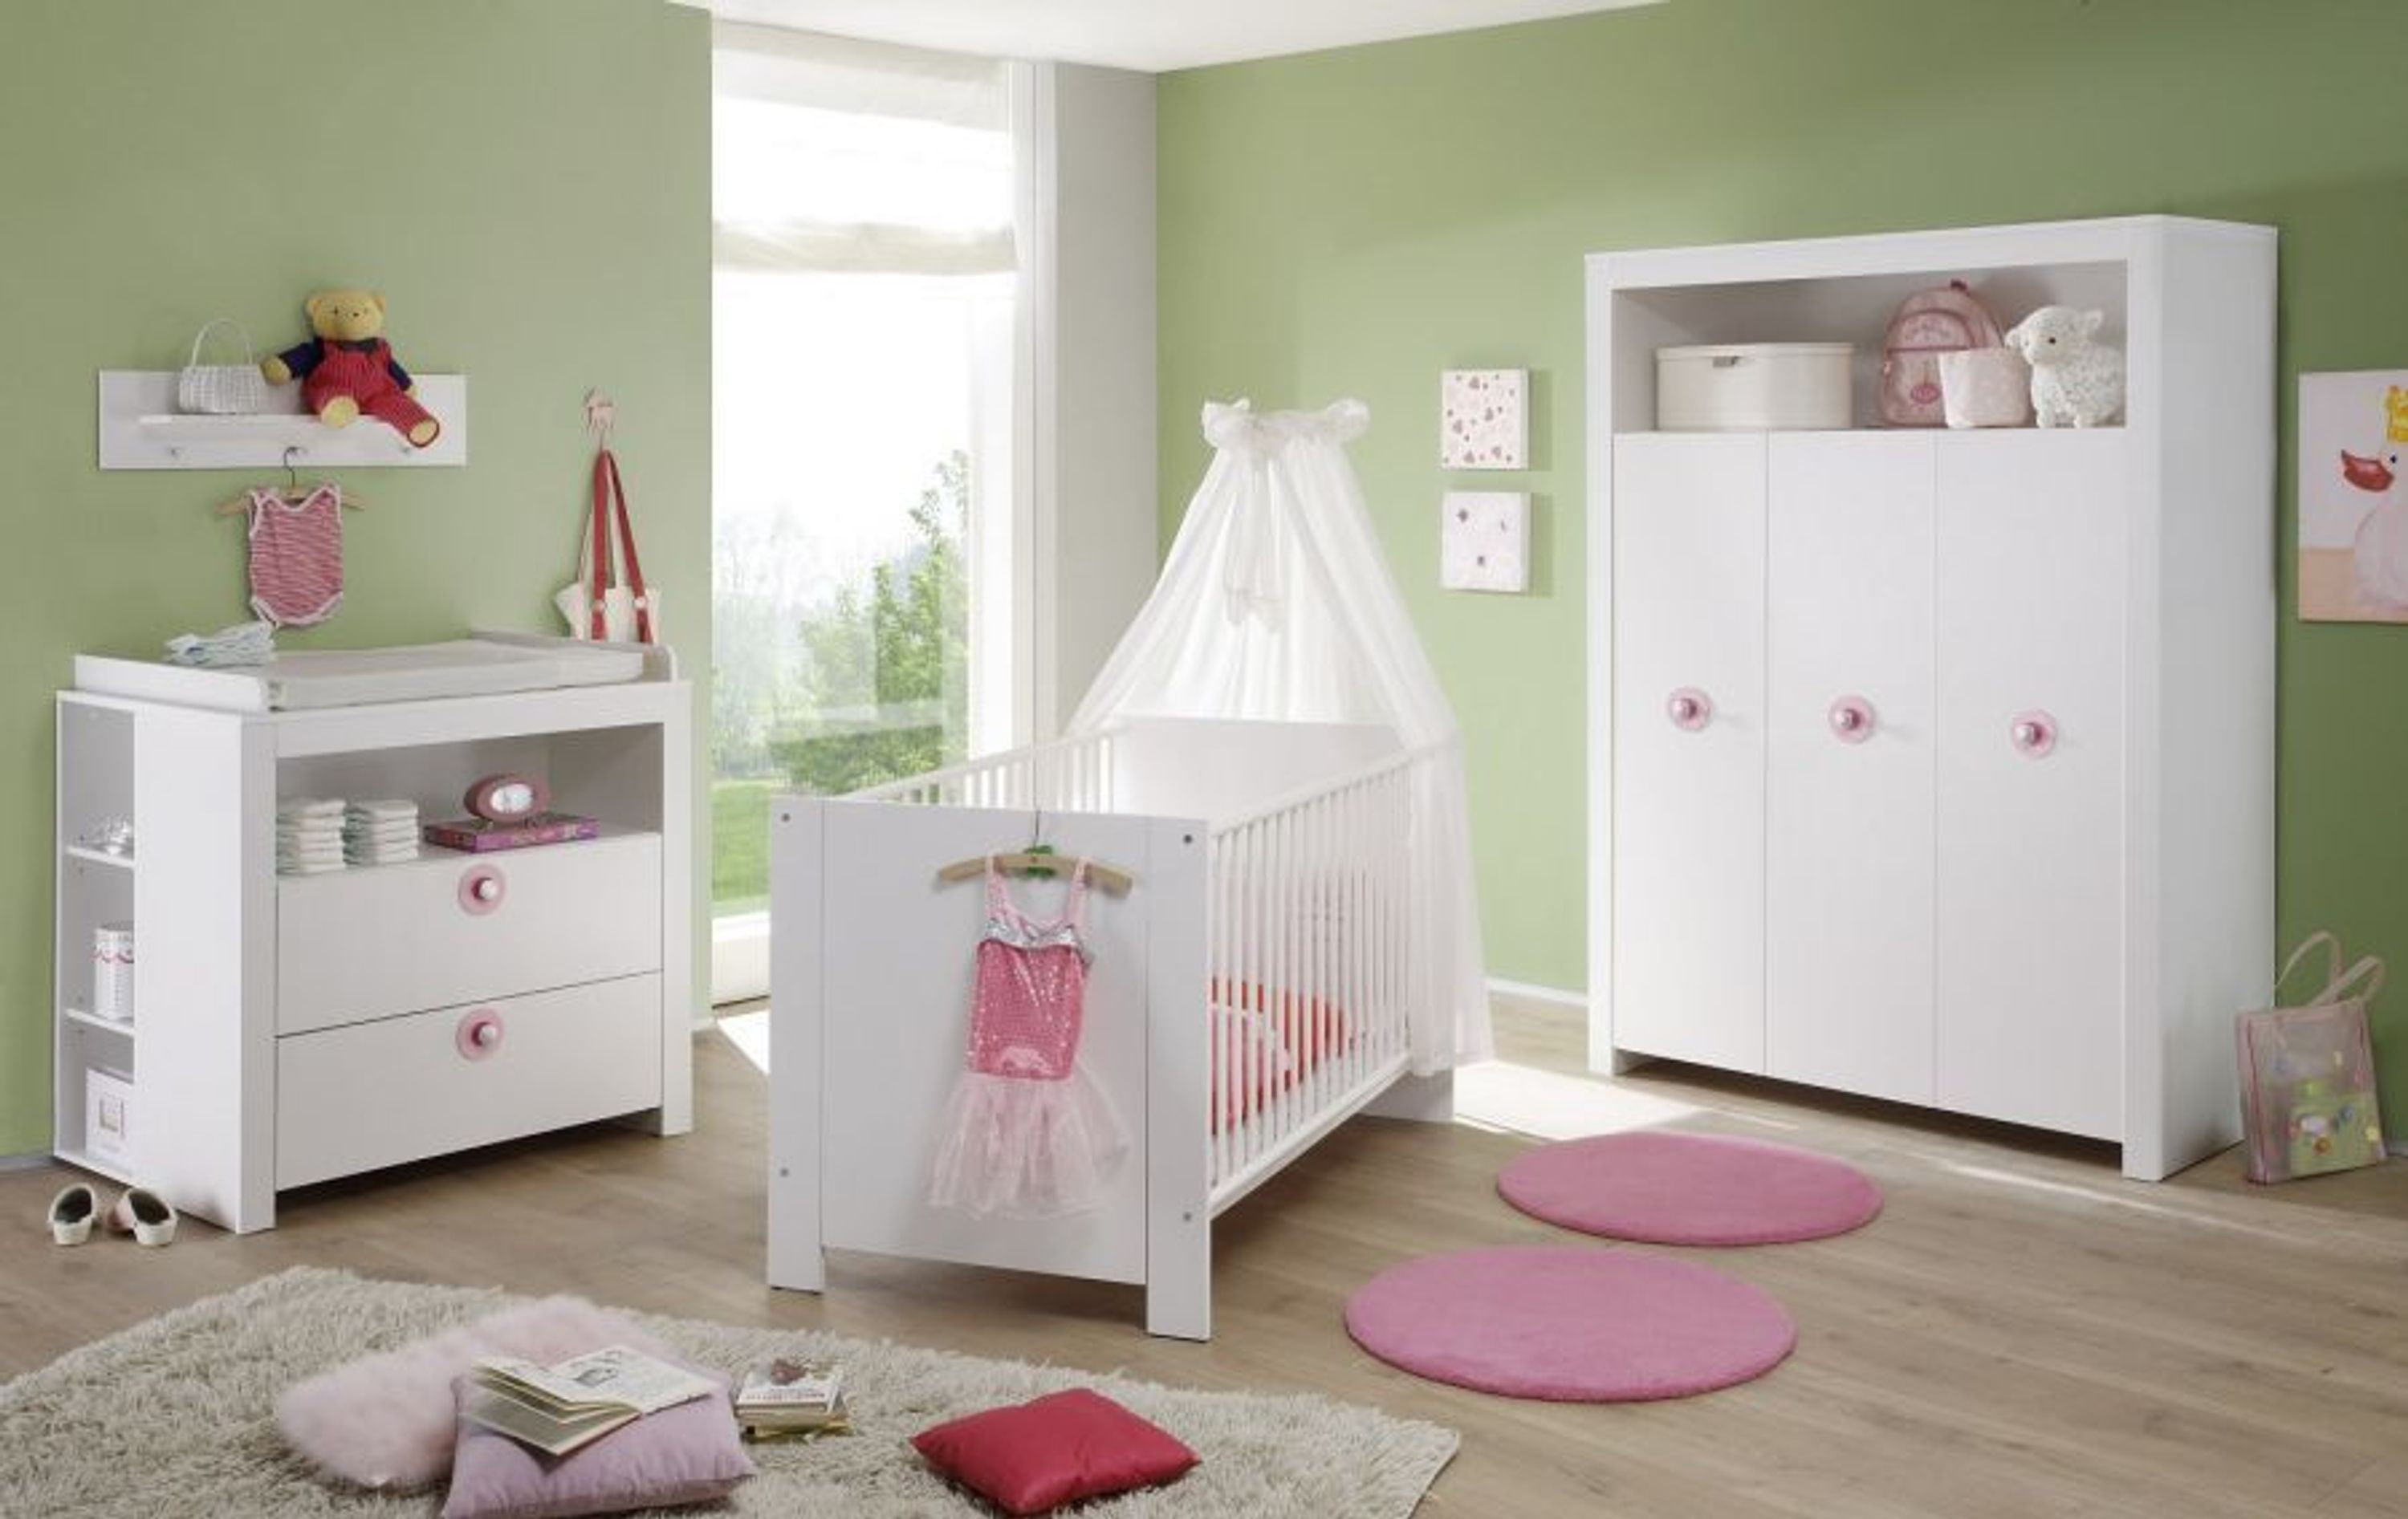 babyzimmer kinderzimmer wei komplett set neu olivia 3 teilig baby m bel blau rosa kaufen bei. Black Bedroom Furniture Sets. Home Design Ideas